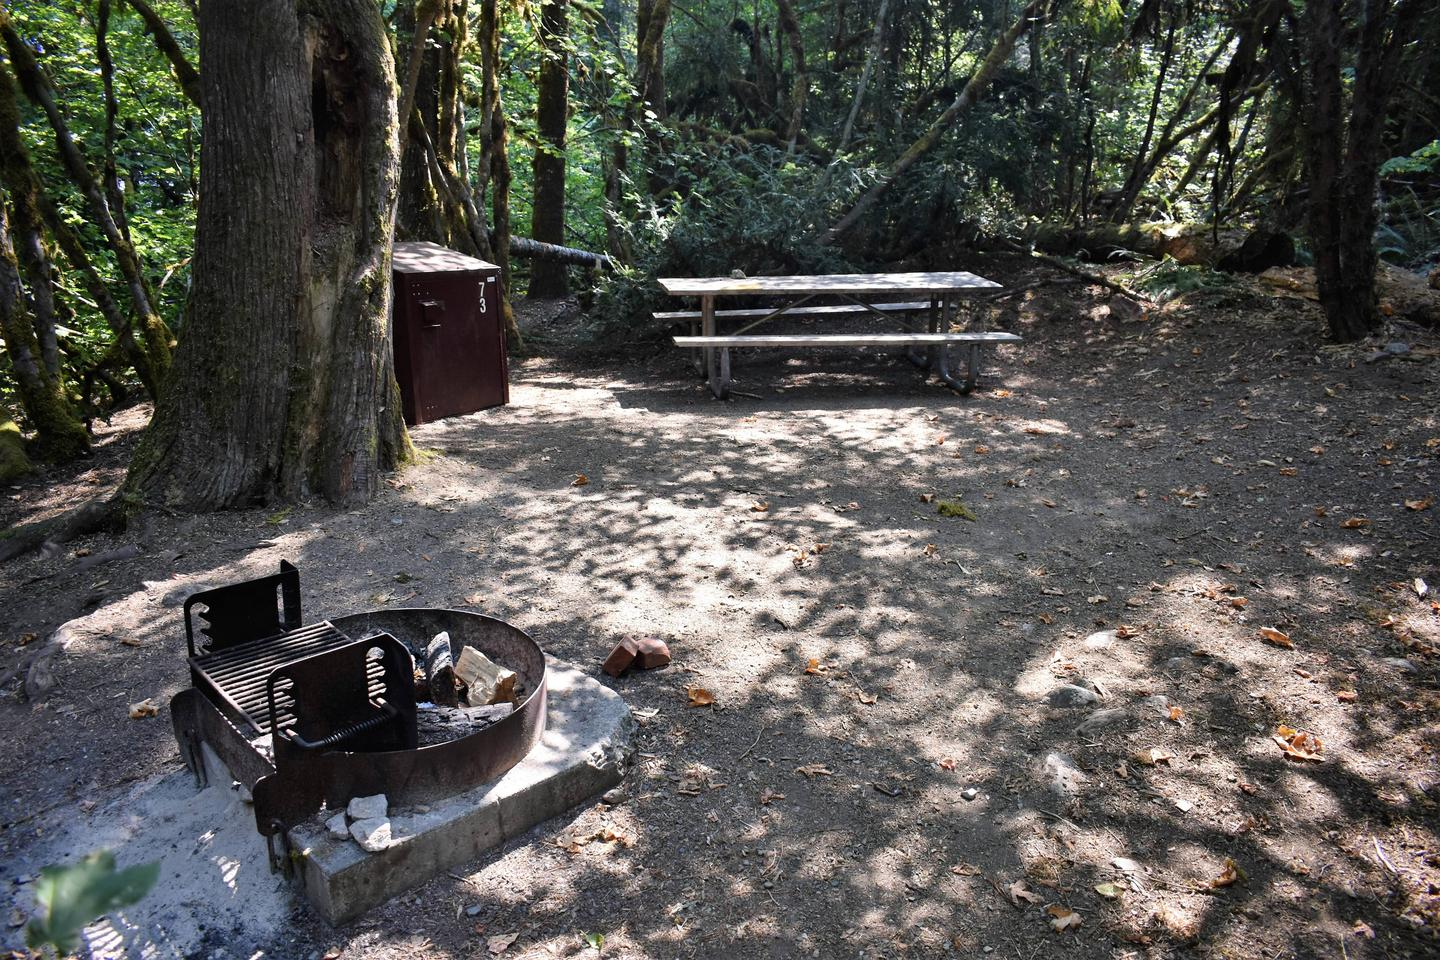 Fire ring, food storage locker, and picnic tableView of campsite